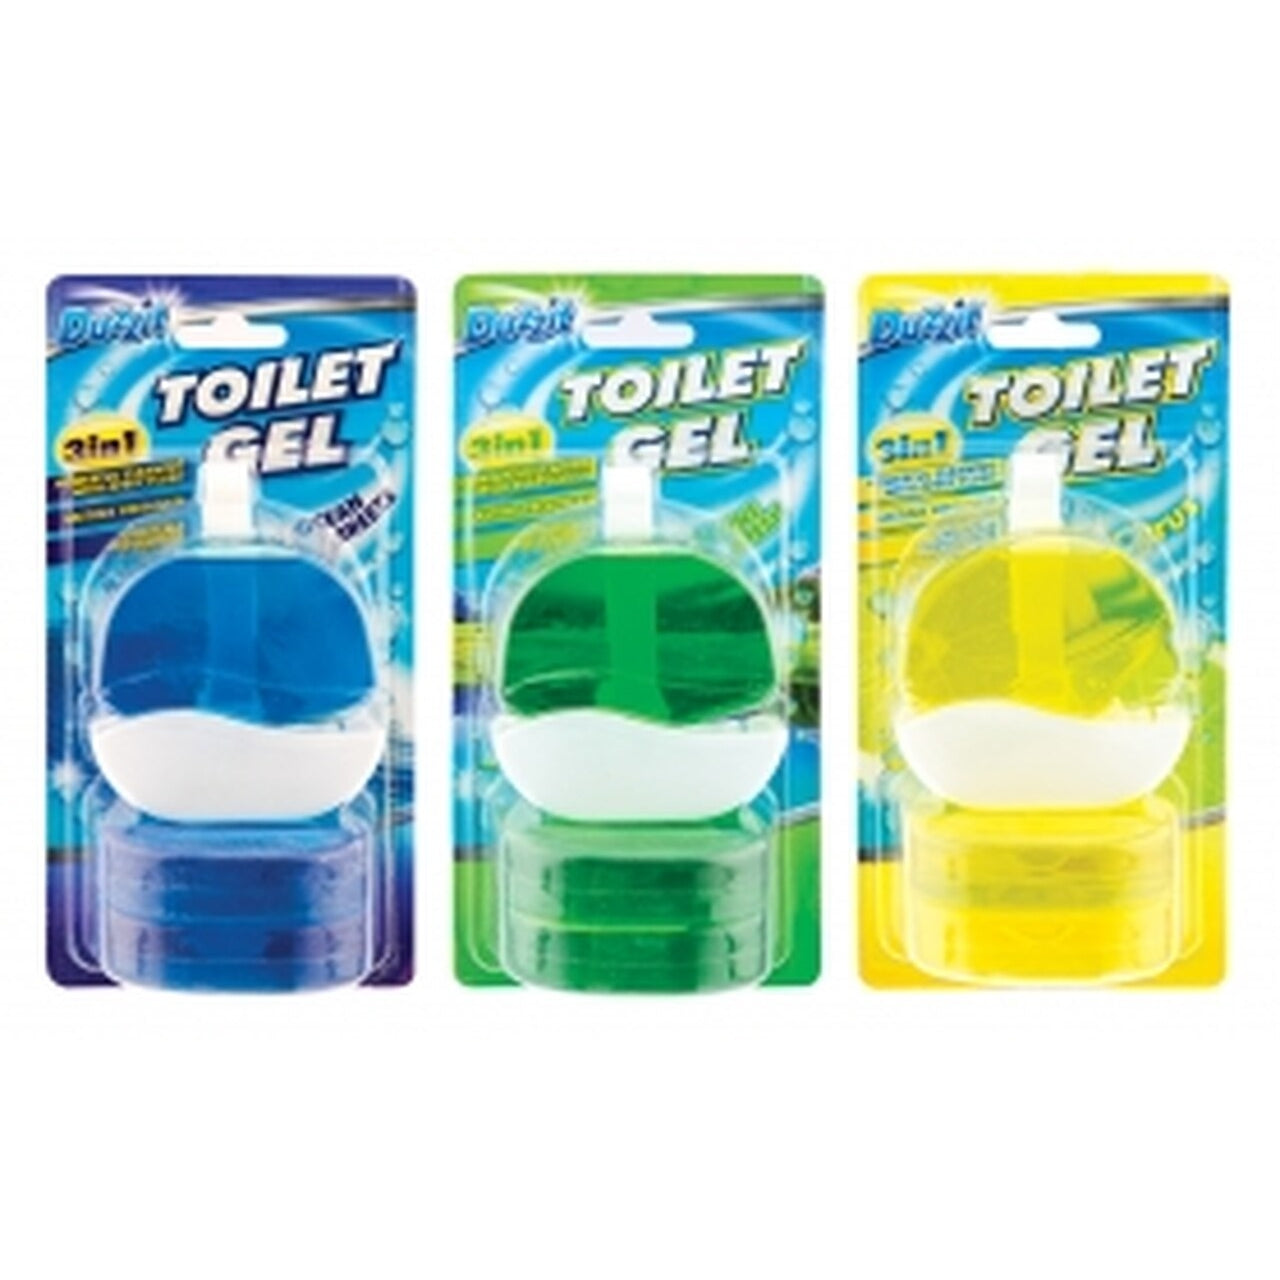 Pack of 3 Duzzit Liquid Toilet Block&Holder